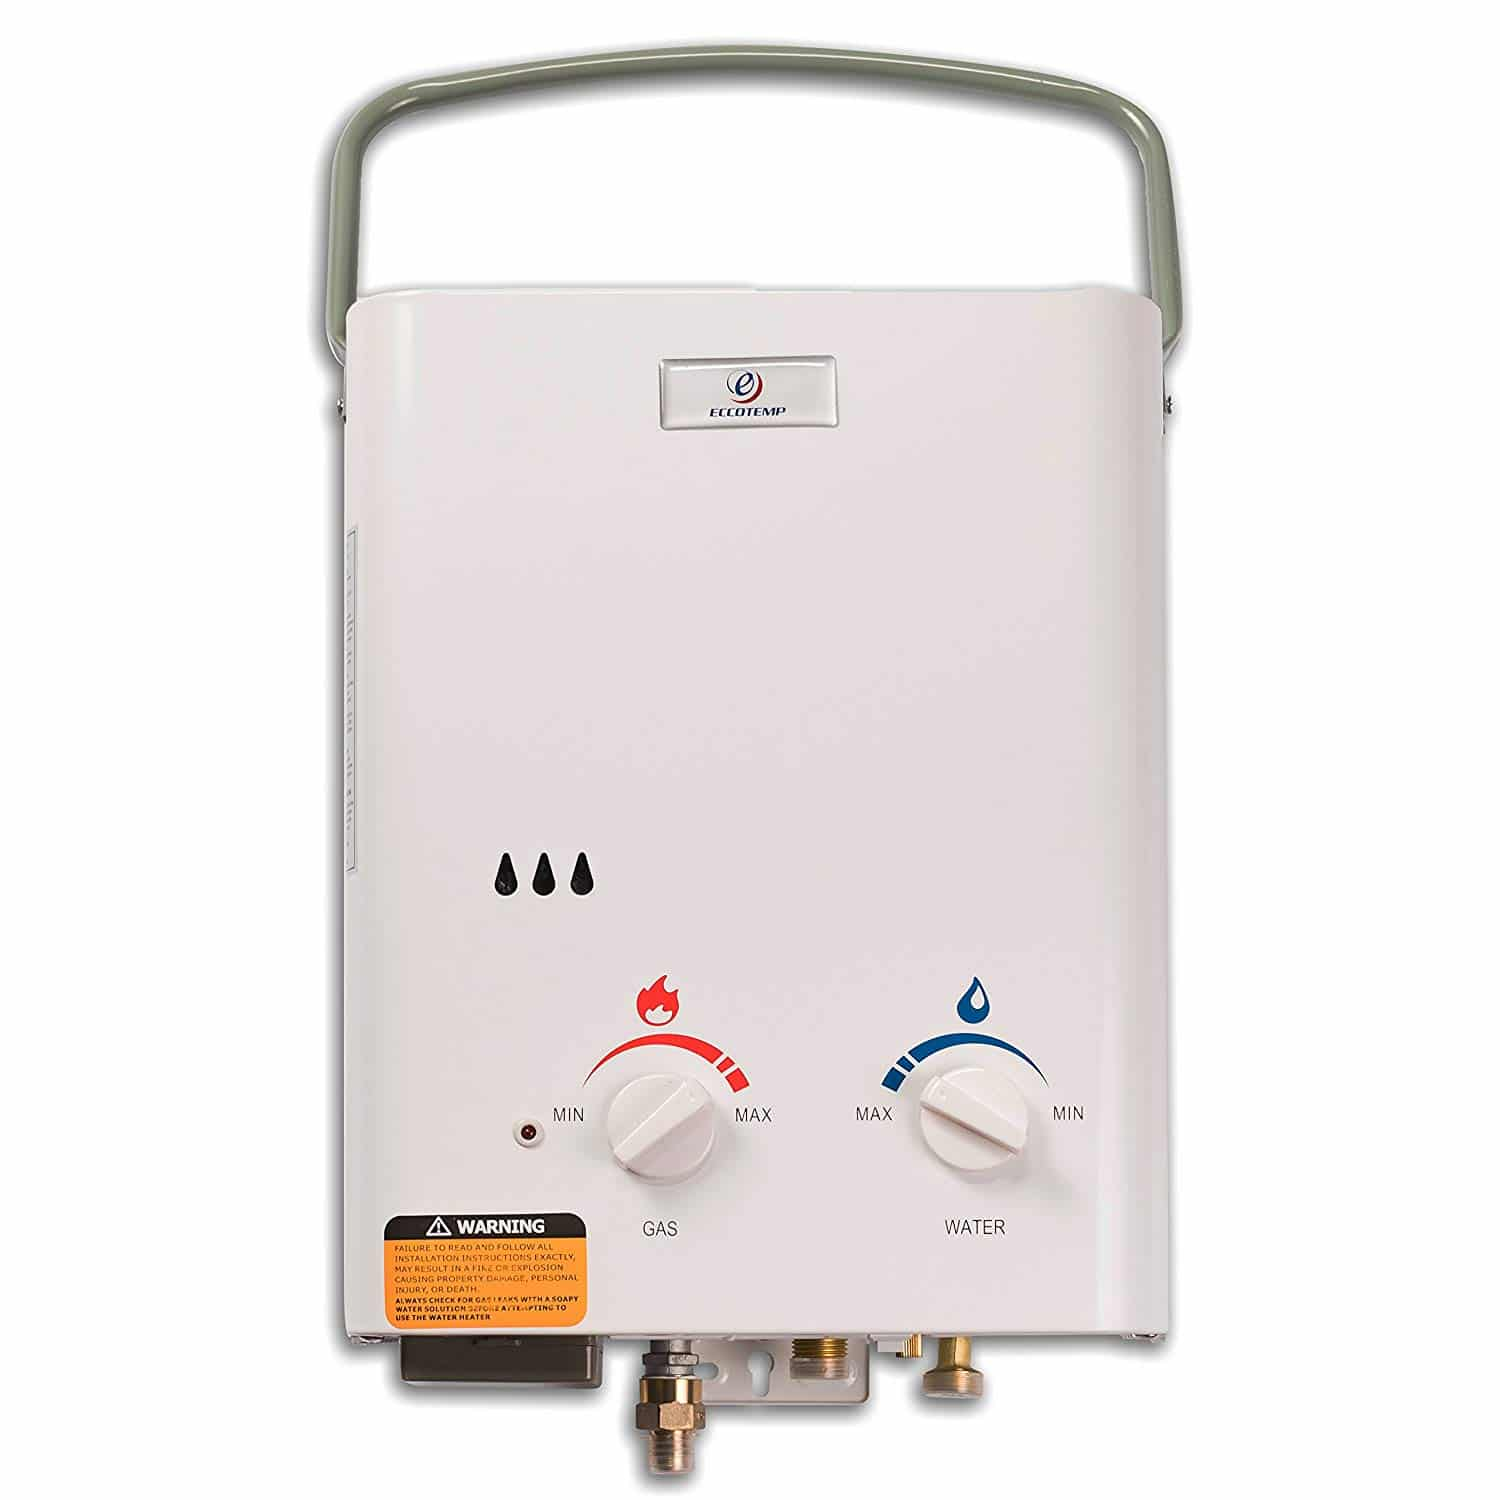 eccotemp l5 portable tankless water heater manual